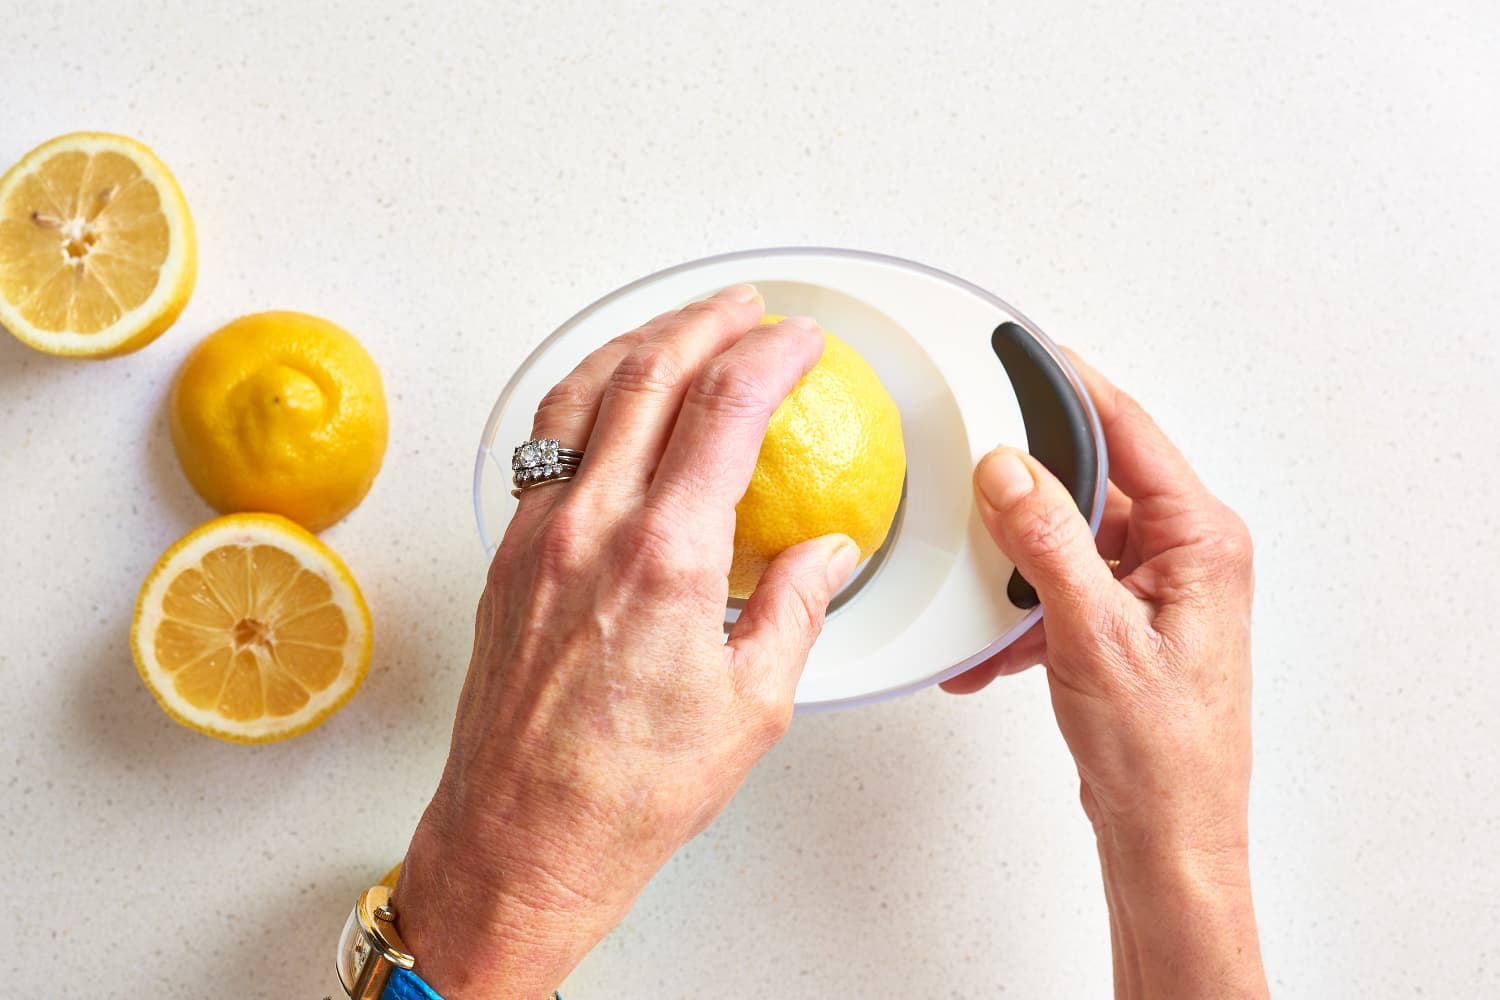 The Very Last Thing You Should Do with a Juiced Lemon Half Before You Toss It